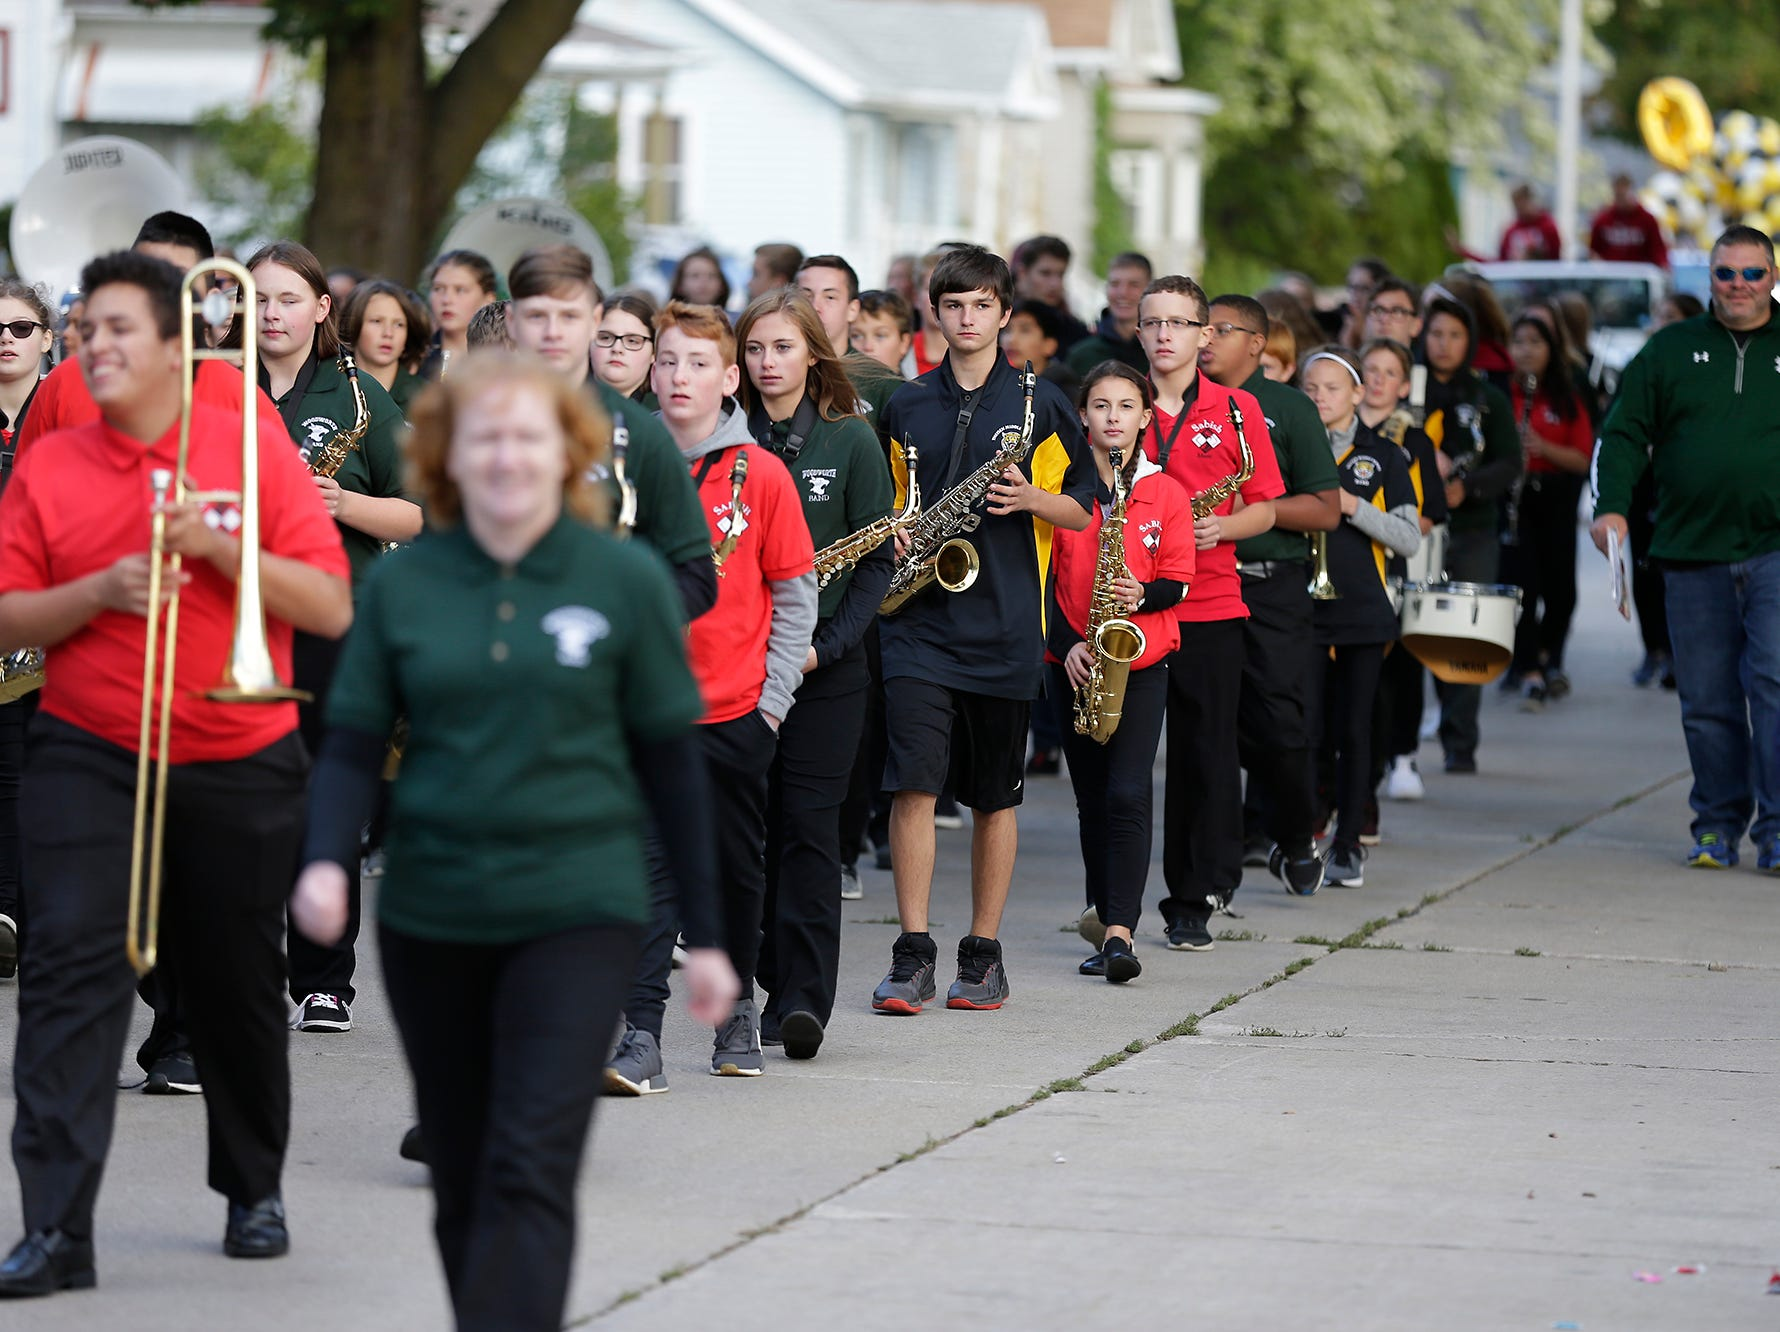 Members of Sabish Middle School, Theisen Middle School and Woodworth Middle School marching bands march in the Fond du Lac High School football homecoming parade Friday, Sept. 28, 2018, which went down portions of Martin Avenue and Ninth Street in Fond du Lac, Wisconsin.